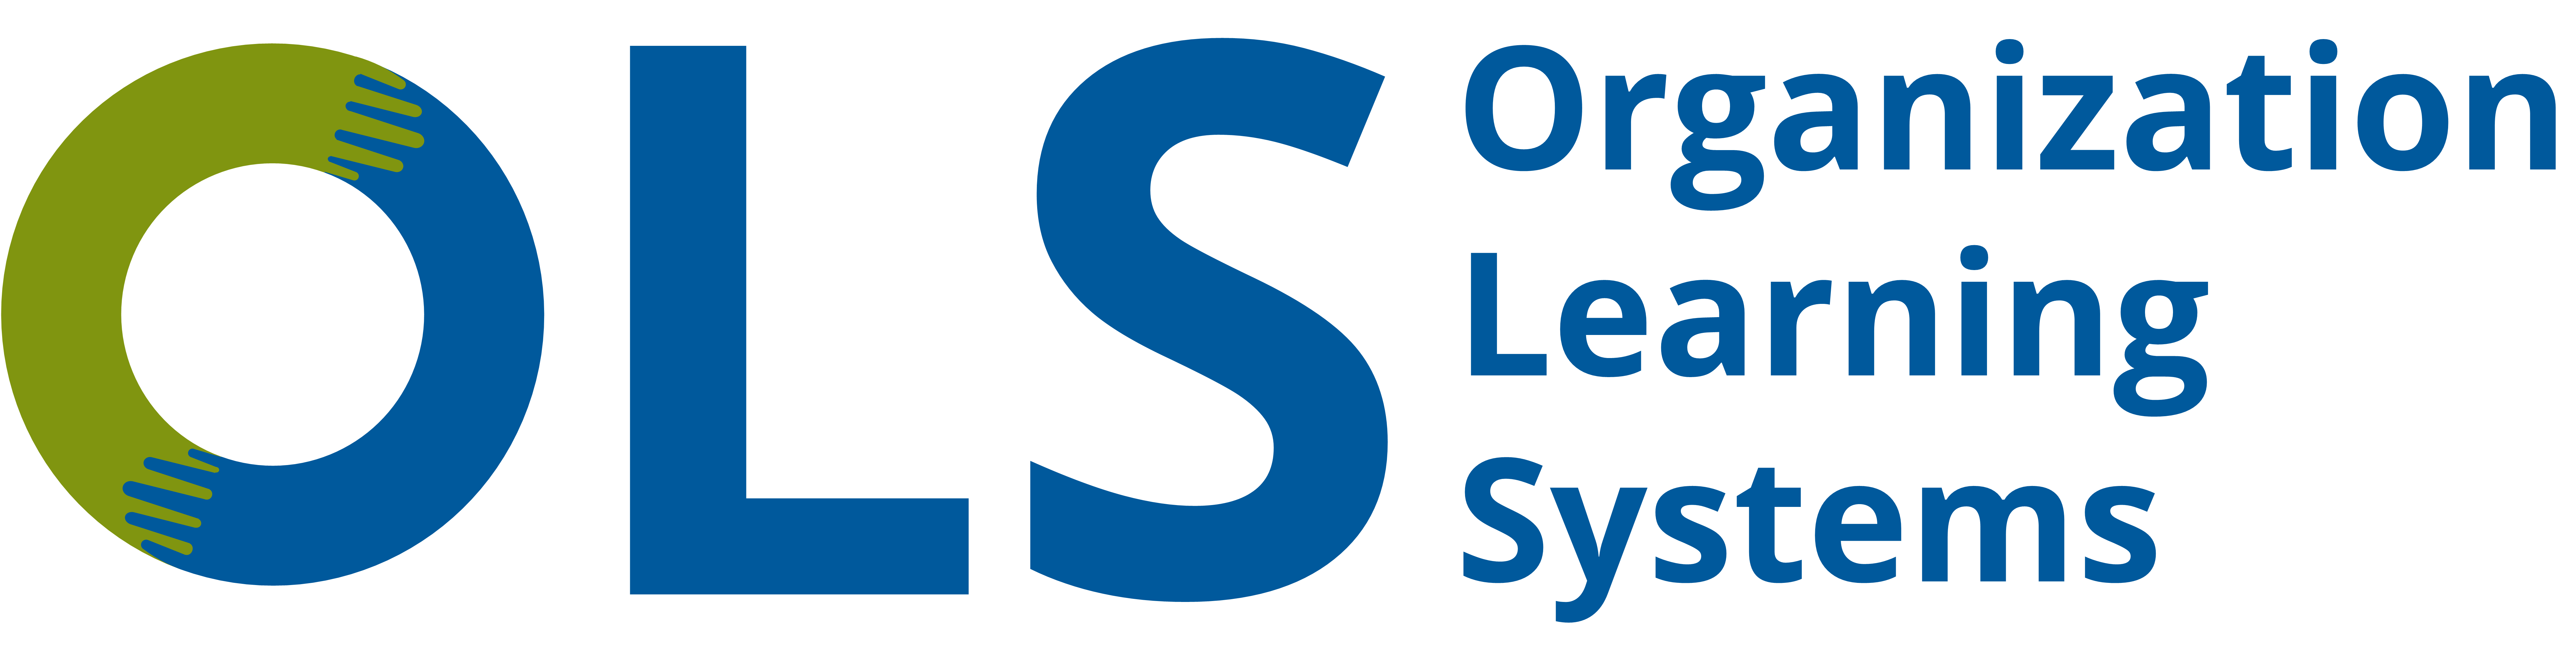 Organization Learning Systems